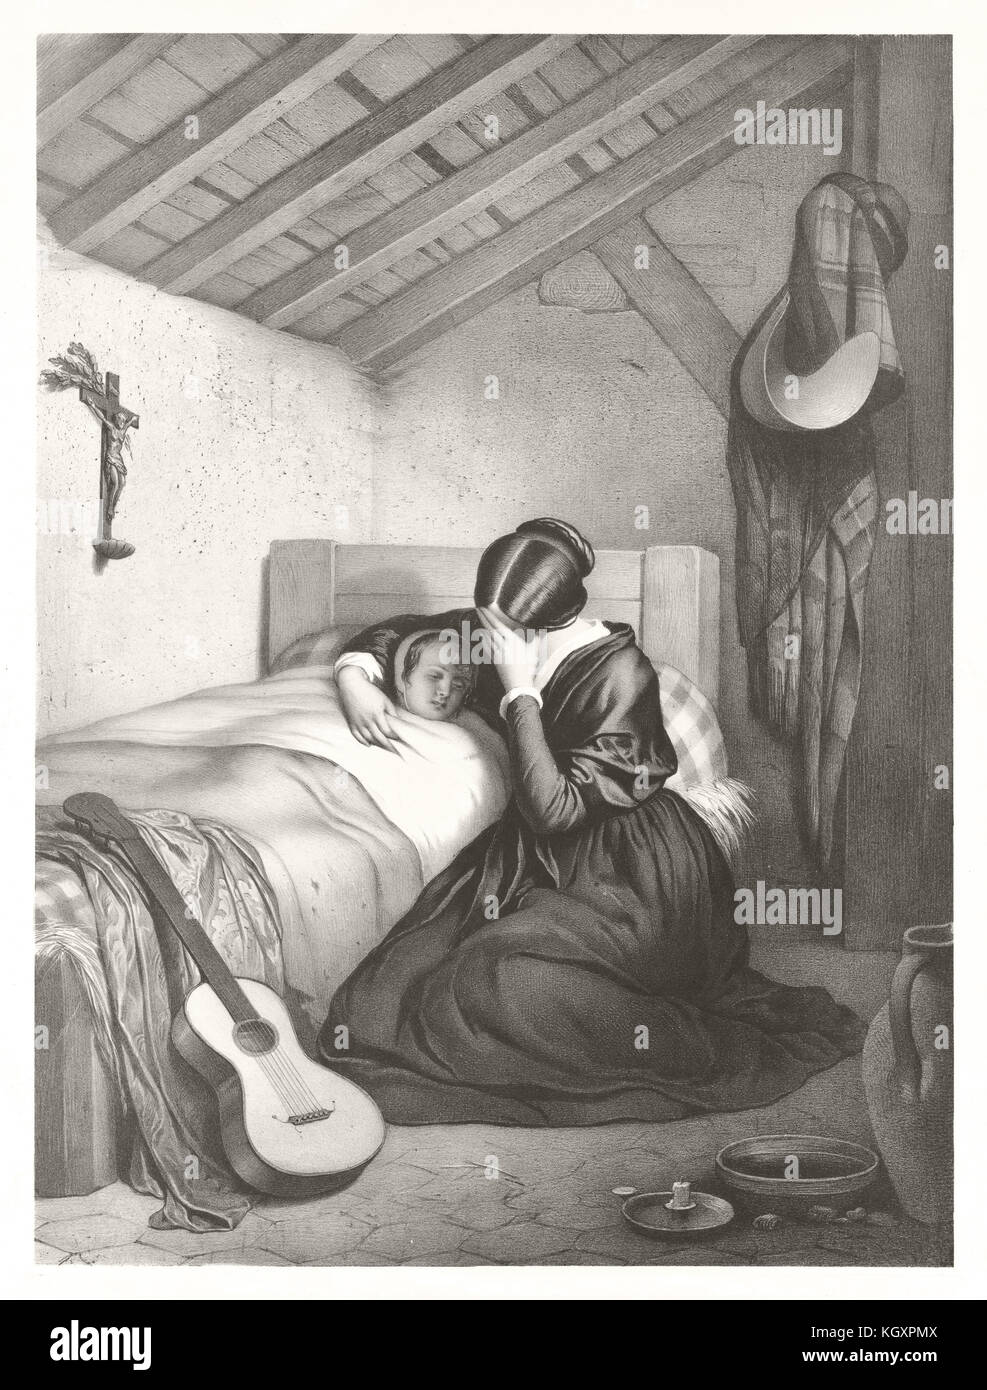 Old illustration depicting heartbroken mother at the bedside of her sick daughter. By Alophe, publ. in Paris, 1852 - Stock Image